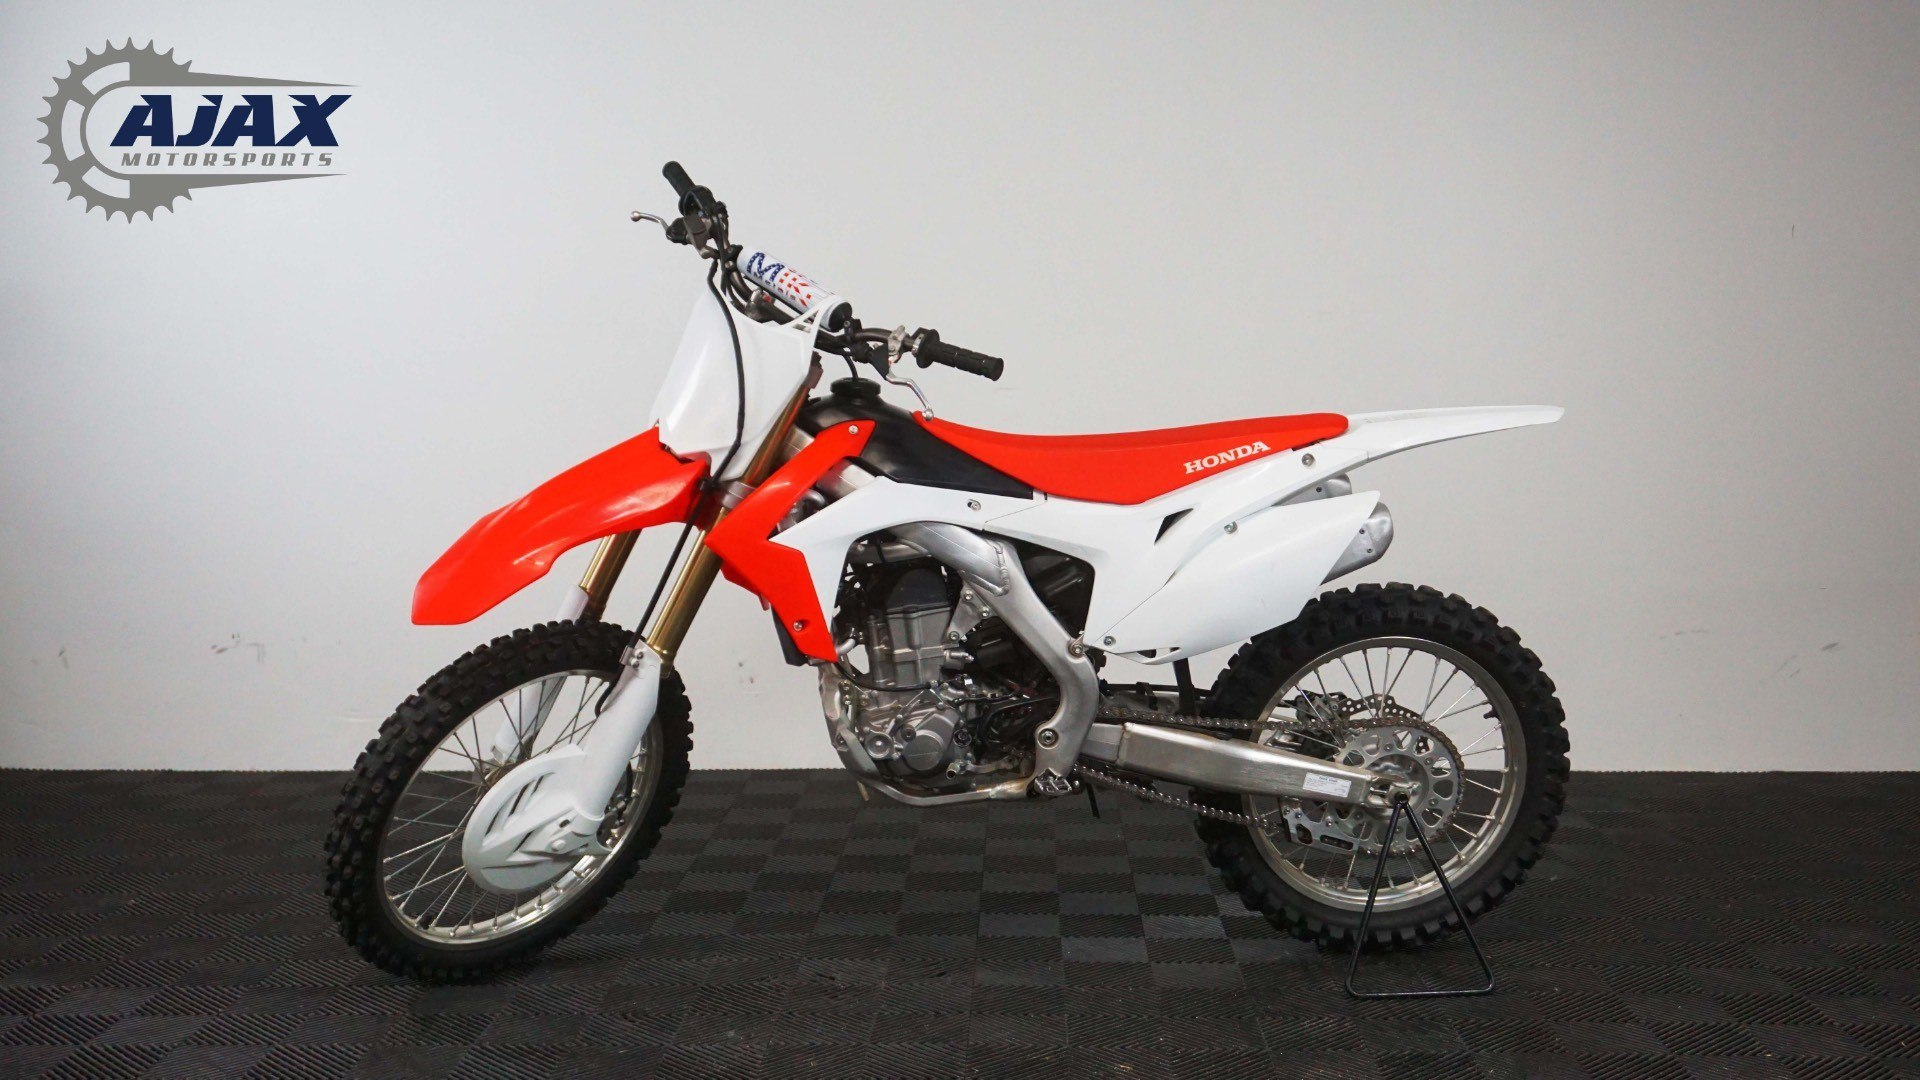 Used 2016 Honda CRF450R Motorcycles in Oklahoma City, OK | Stock ...